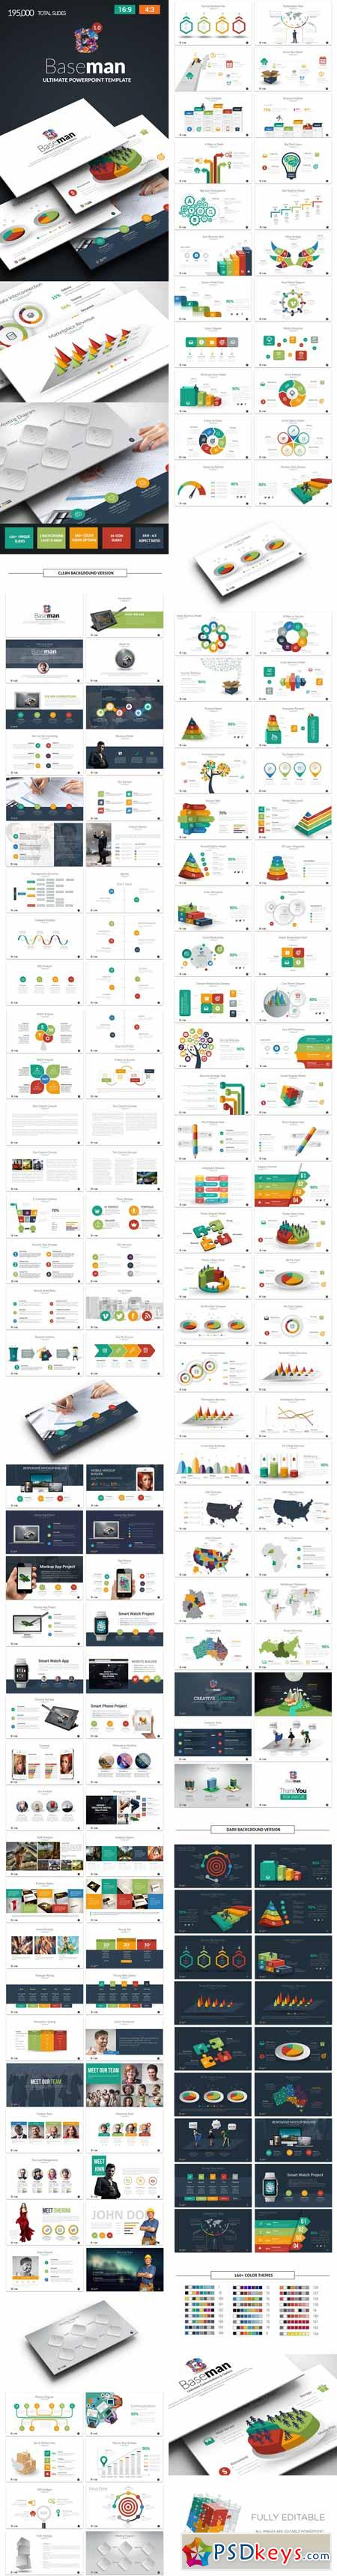 Baseman- Ultimate PowerPoint Template 12898624